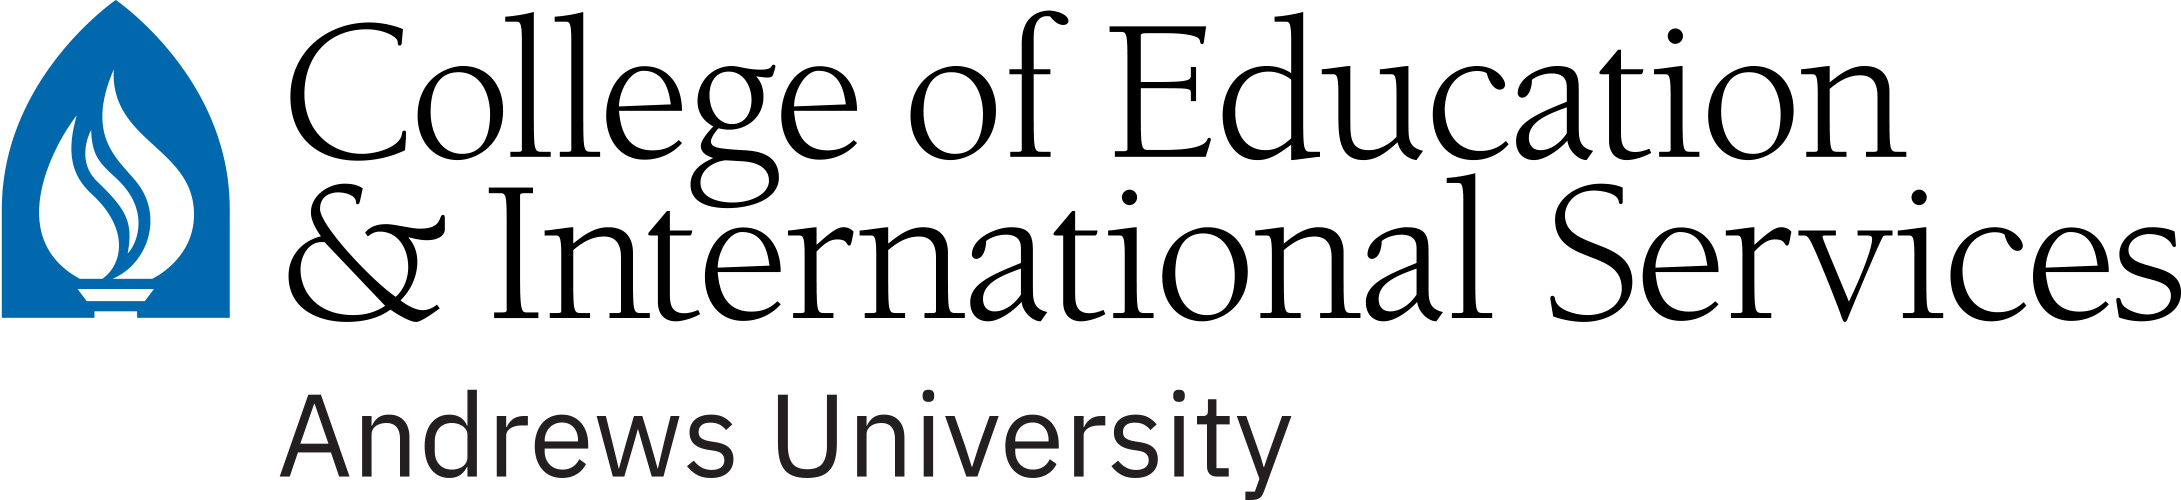 College of Education & International Services